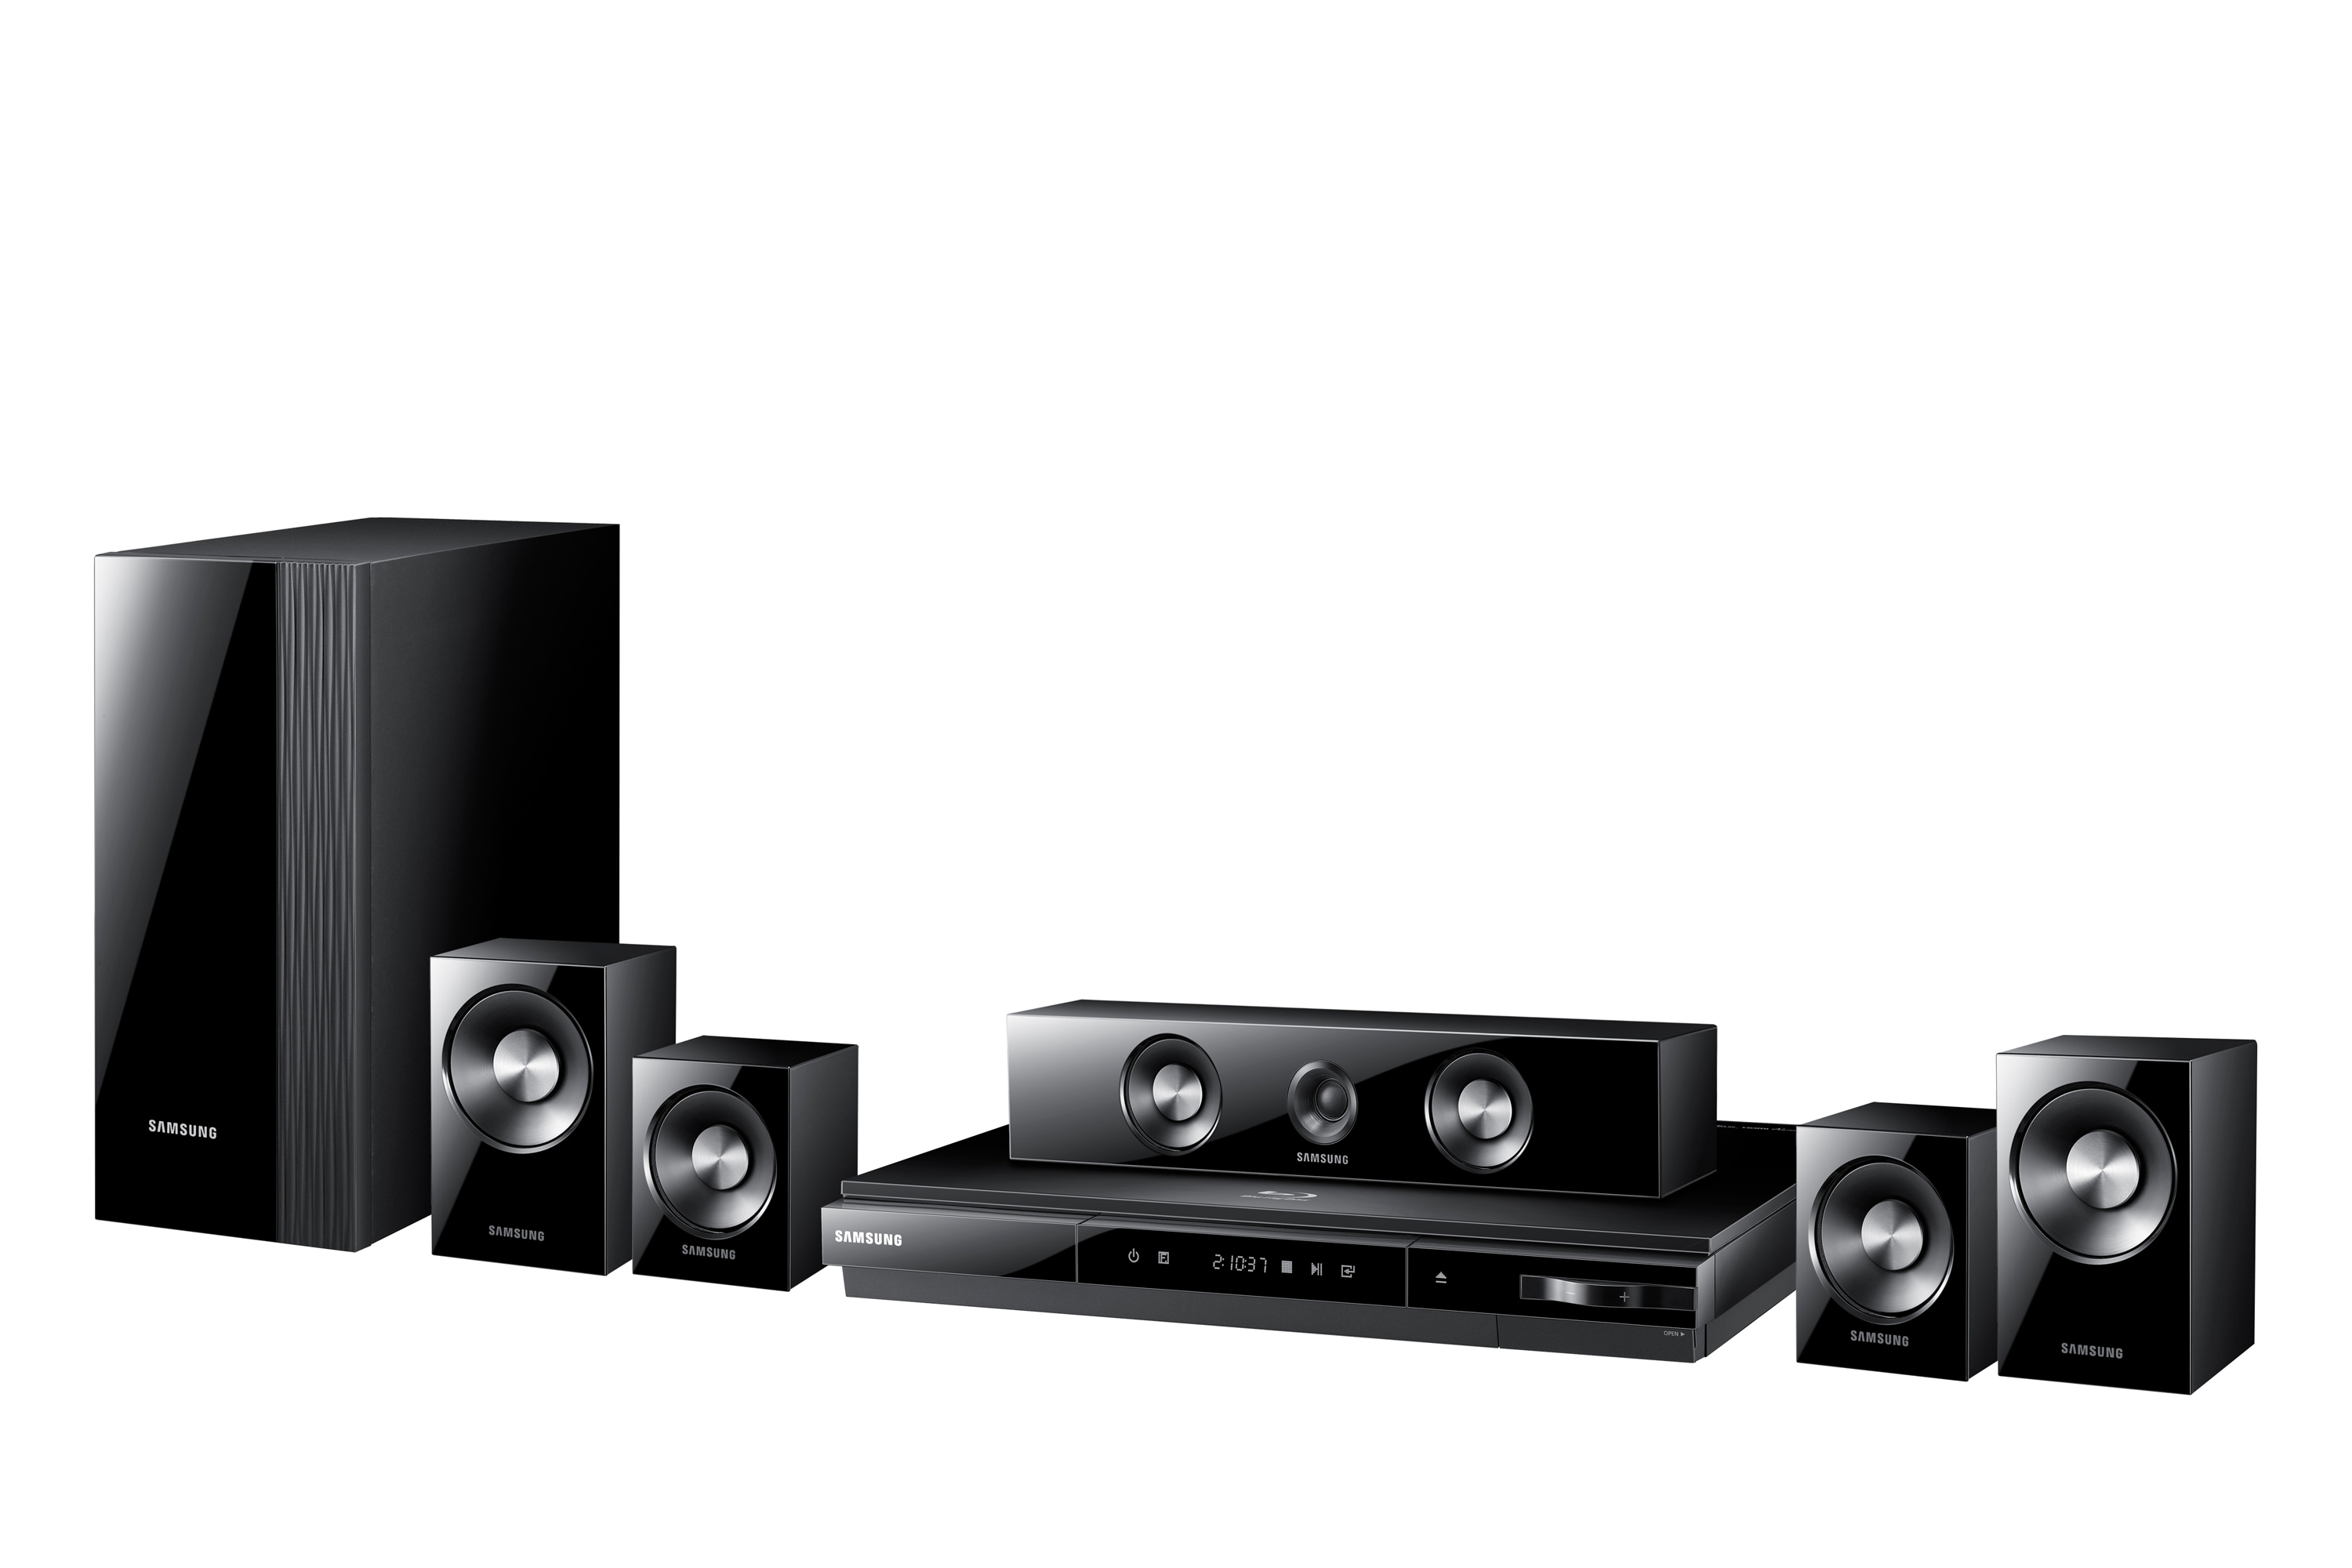 Smart 1080p Blu-ray Home Theatre HT-D5100